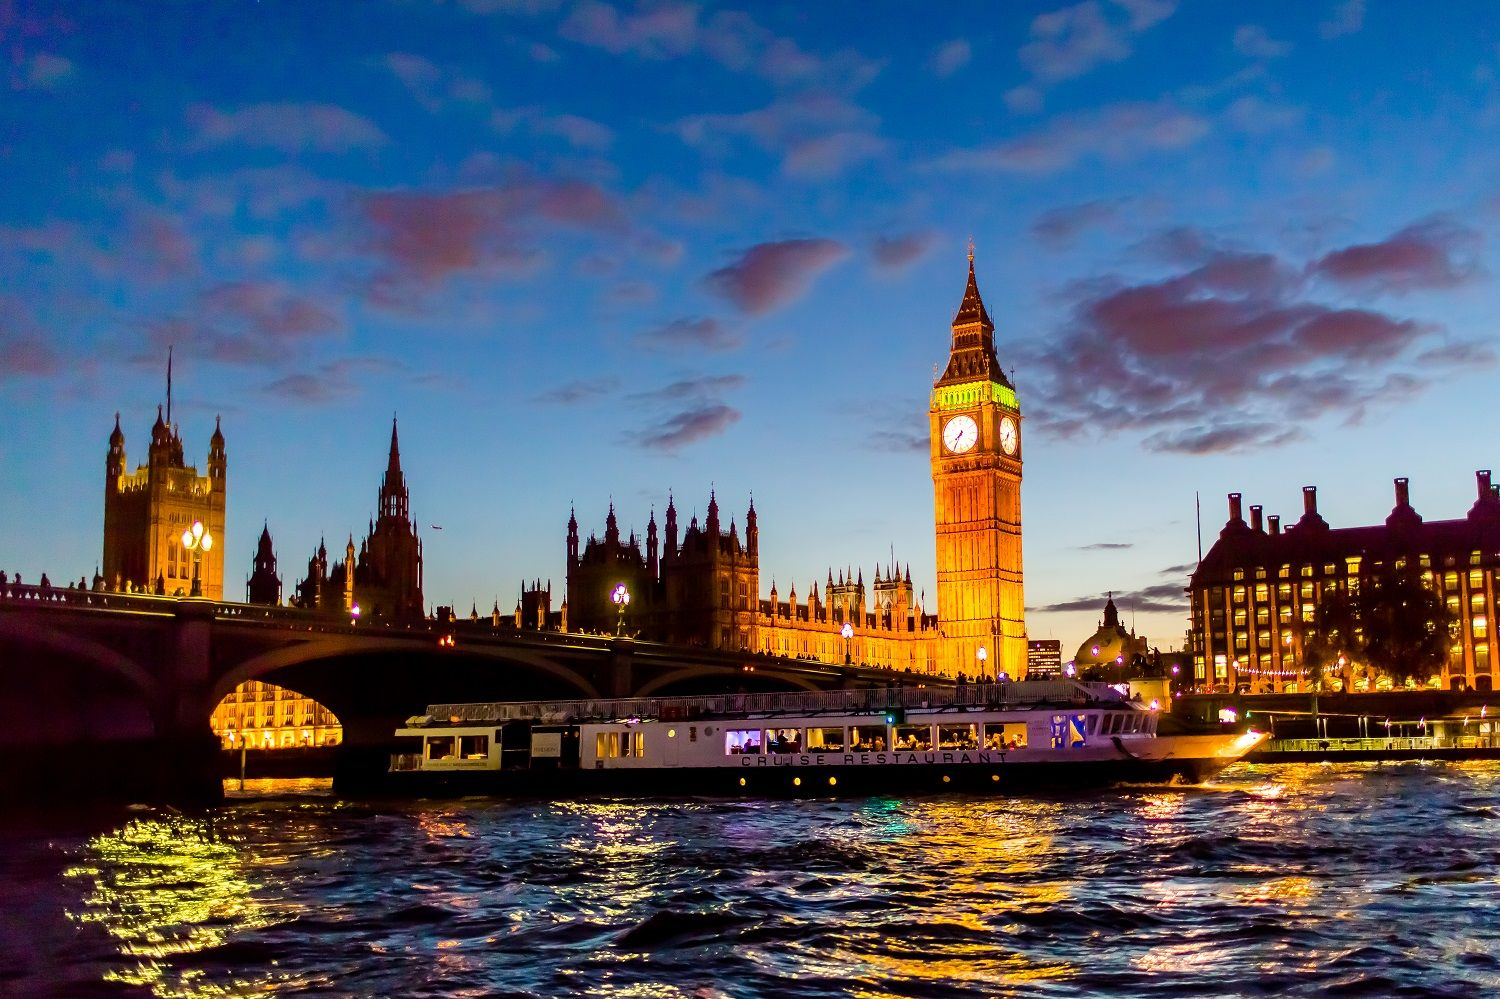 Evening cruise on the River Thames London